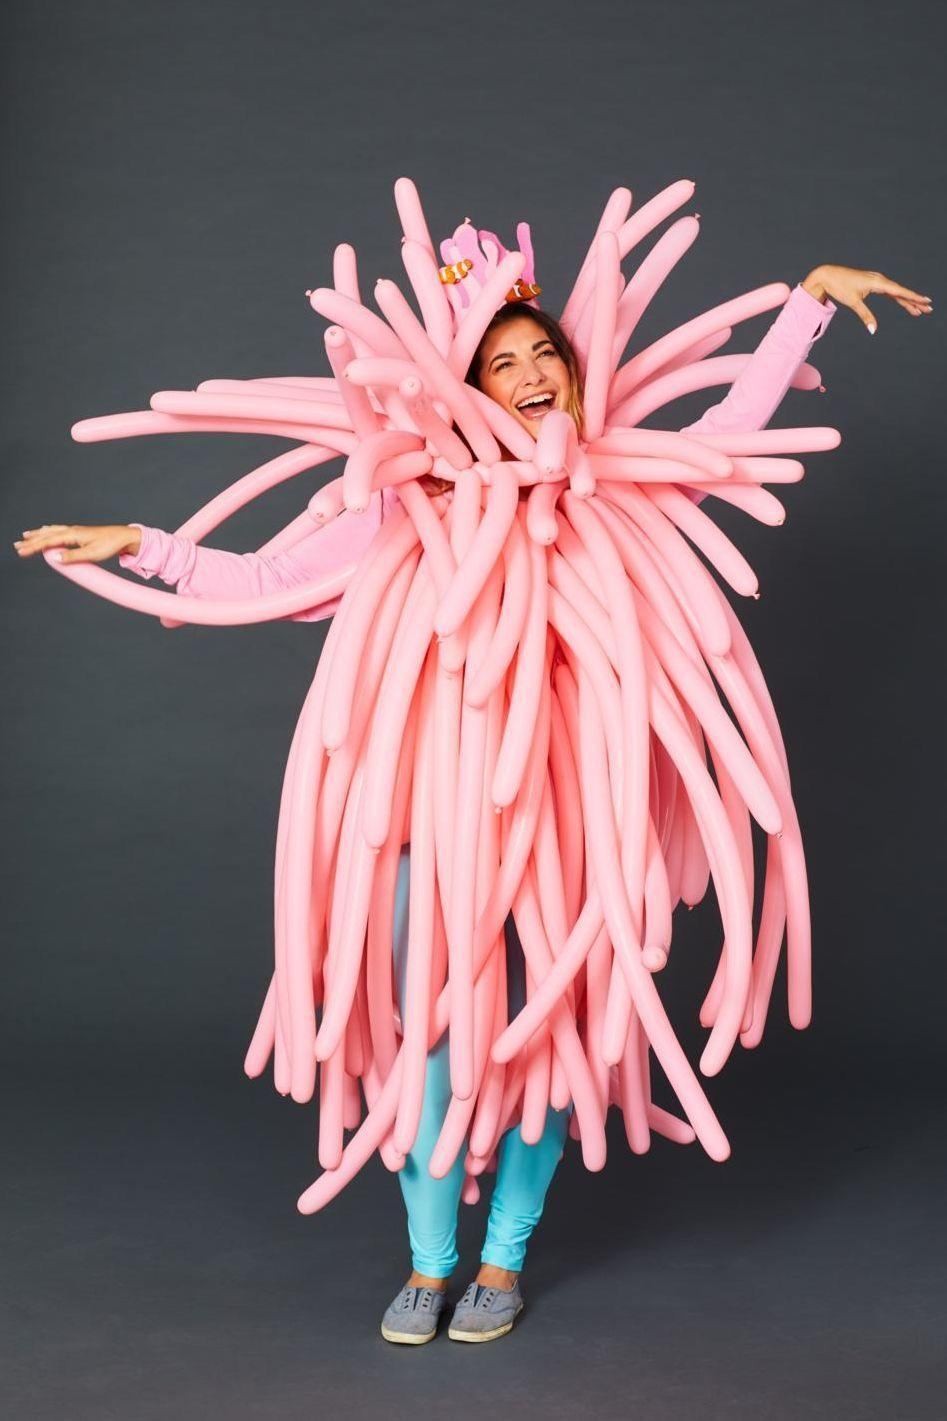 """<p>To really make an entrance at your next Halloween party, blow up long, pink balloons and attach them by the knot to a pink shirt with safety pins. </p><p><a class=""""link rapid-noclick-resp"""" href=""""https://www.amazon.com/Pioneer-Balloon-Company-Latex-Balloons/dp/B004R4F35M?tag=syn-yahoo-20&ascsubtag=%5Bartid%7C10070.g.490%5Bsrc%7Cyahoo-us"""" rel=""""nofollow noopener"""" target=""""_blank"""" data-ylk=""""slk:SHOP PINK BALLOONS"""">SHOP PINK BALLOONS</a></p>"""